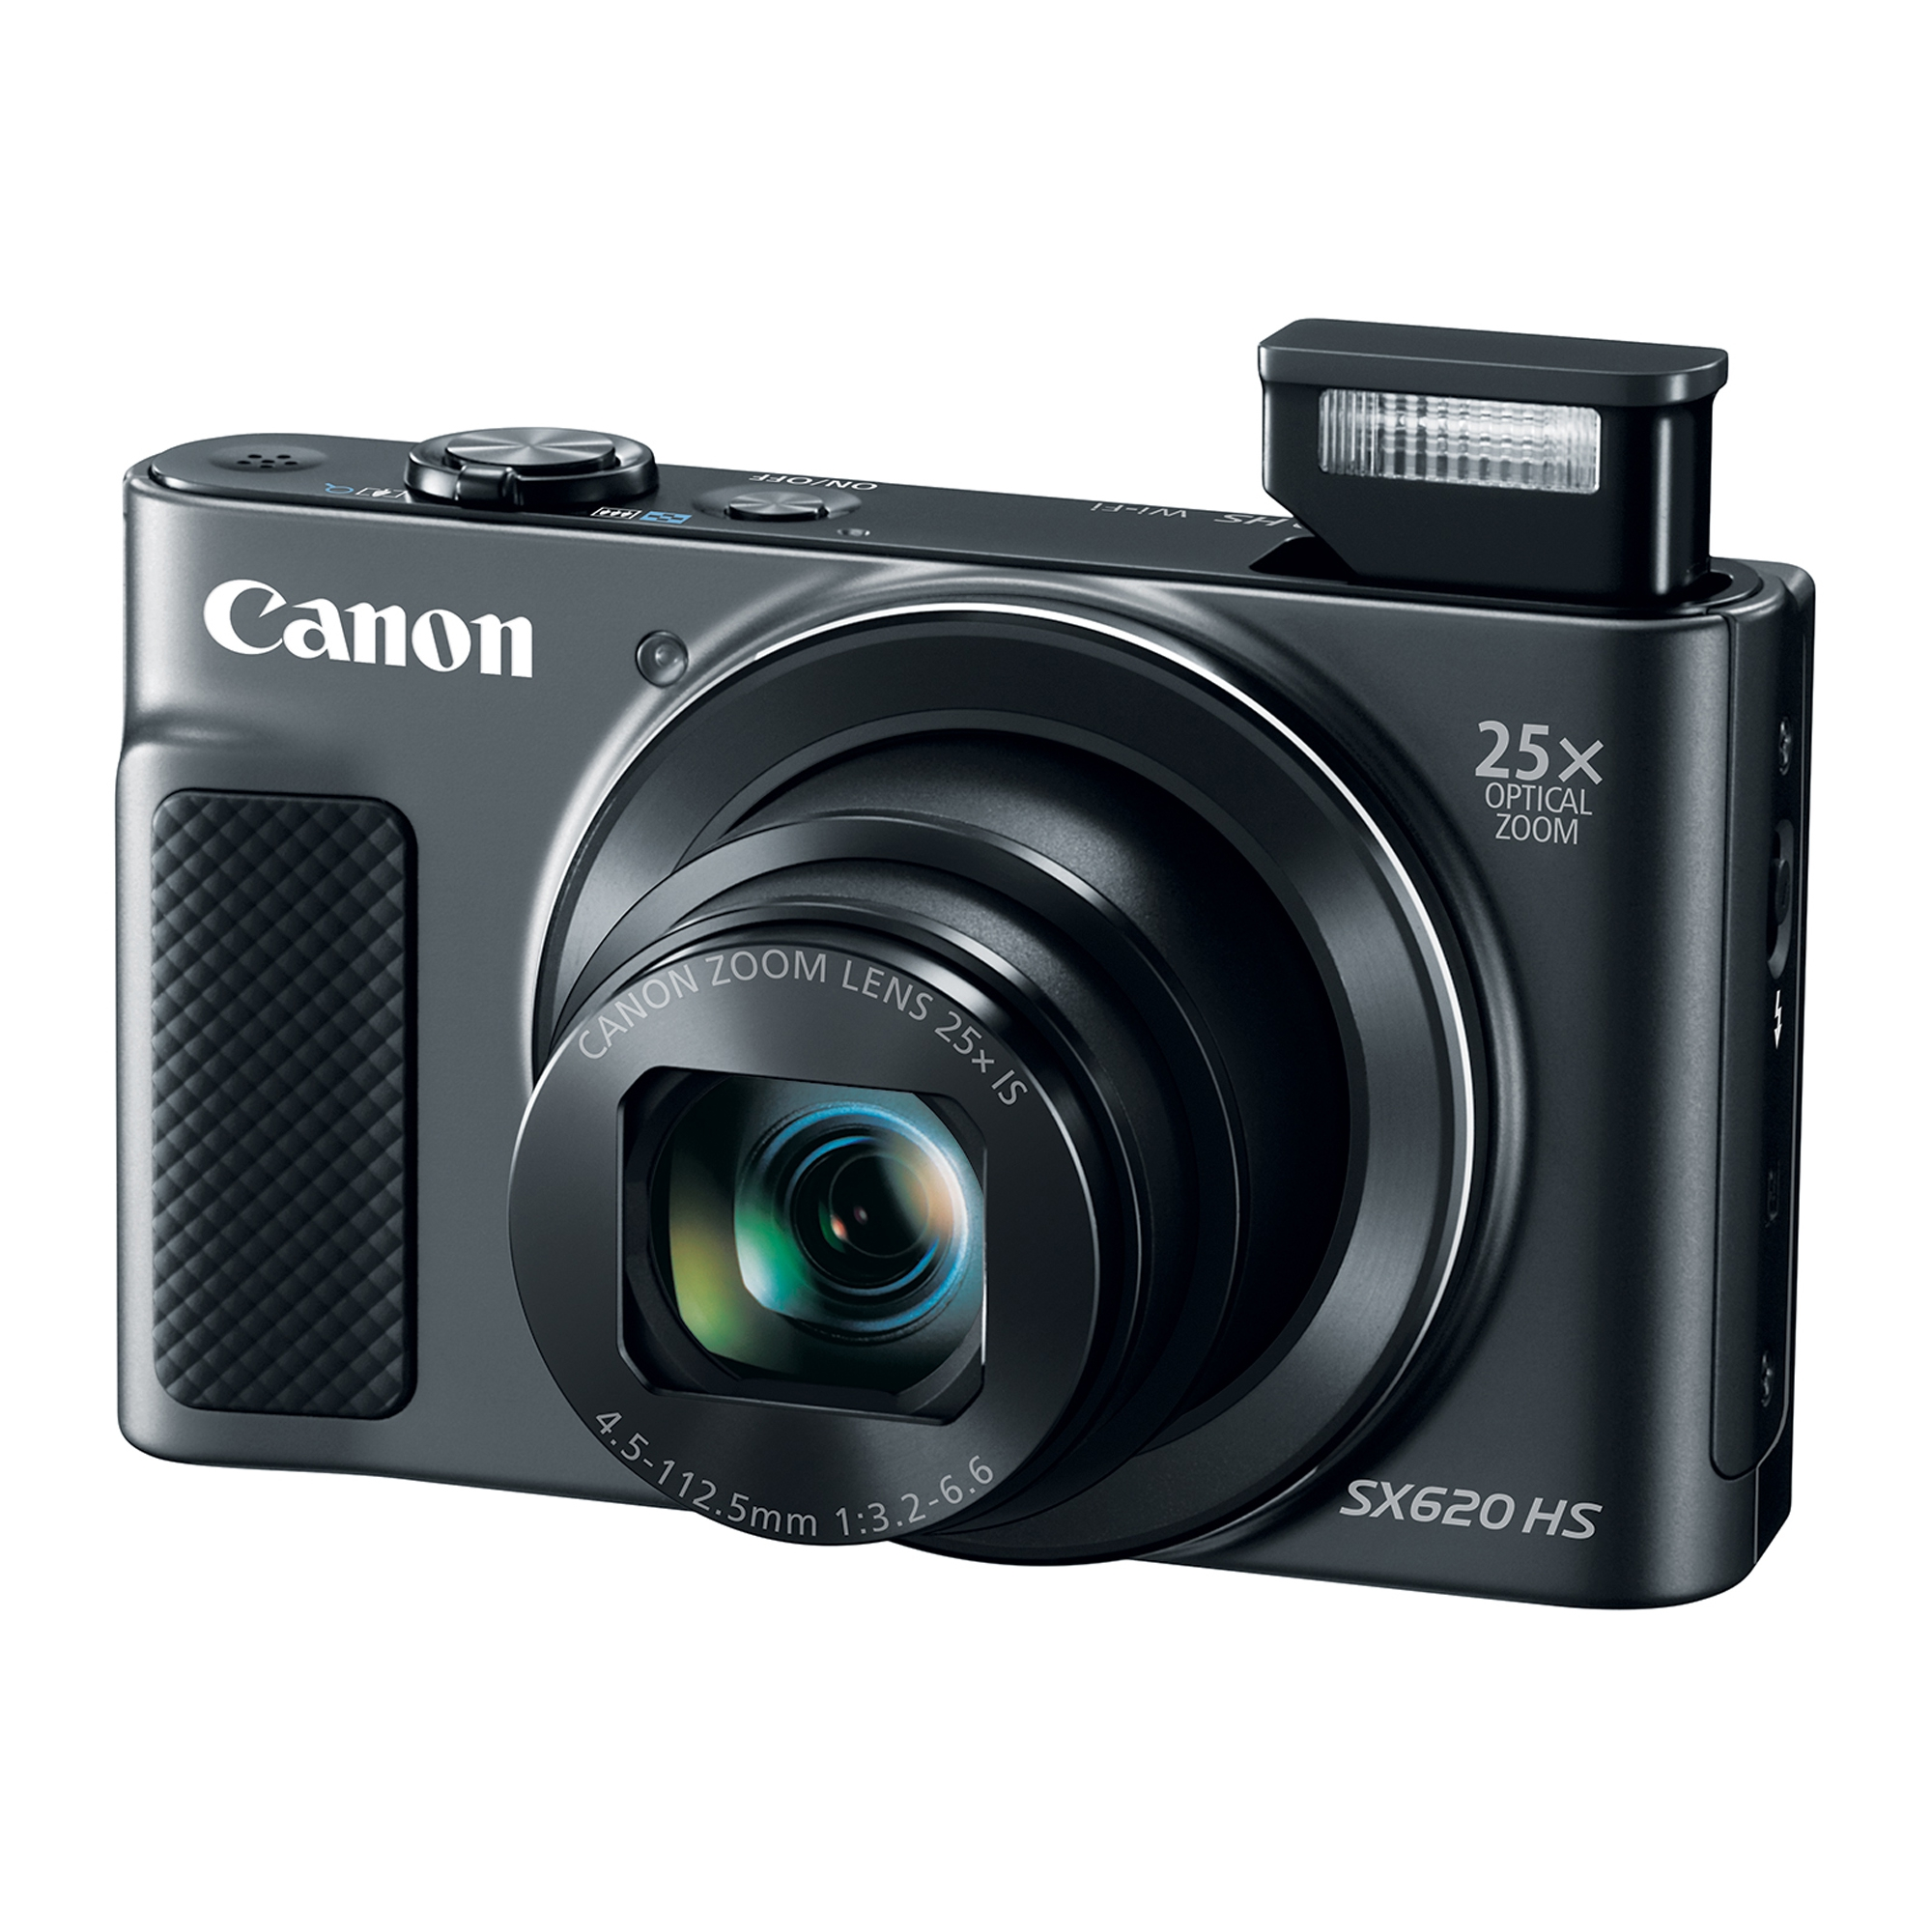 Canon PowerShot SX620 HS 20.2 Megapixel Digital Camera, 25x Optical Zoom, Wi-Fi, NFC, 1080p Full HD Video, 3-inch LCD - Black